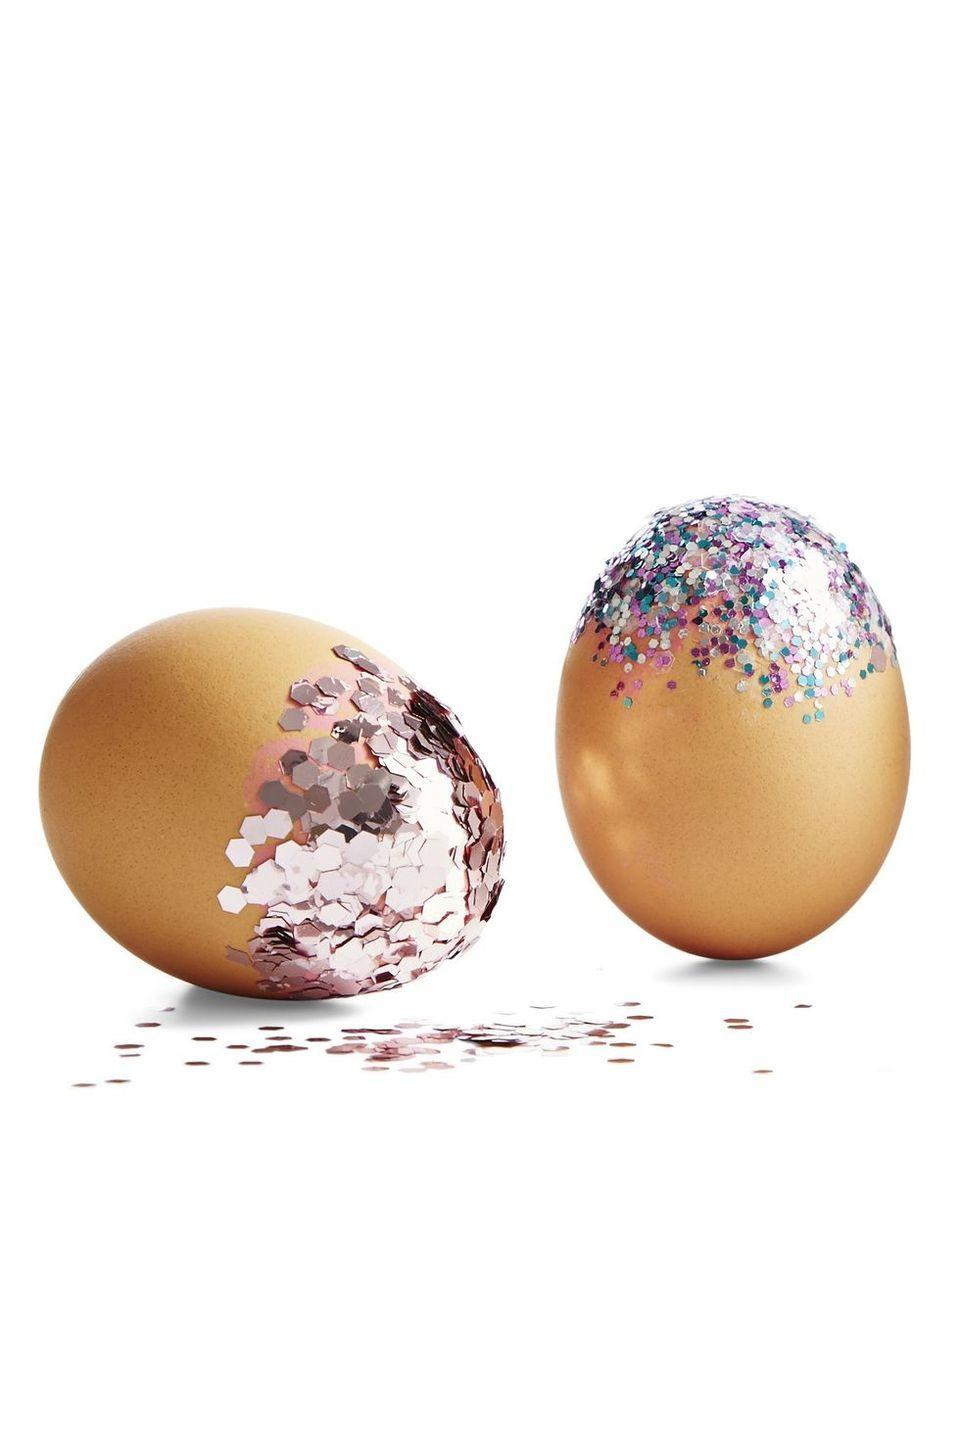 """<p>Glitter makes everything better, doesn't it? Make your Easter extra sparkly this year with these colorful glitter eggs. </p><p><strong><em>Get the tutorial at <a href=""""https://www.goodhousekeeping.com/holidays/easter-ideas/g711/easter-spring-crafts/?slide=26"""" rel=""""nofollow noopener"""" target=""""_blank"""" data-ylk=""""slk:Good Housekeeping."""" class=""""link rapid-noclick-resp"""">Good Housekeeping. </a></em></strong></p>"""